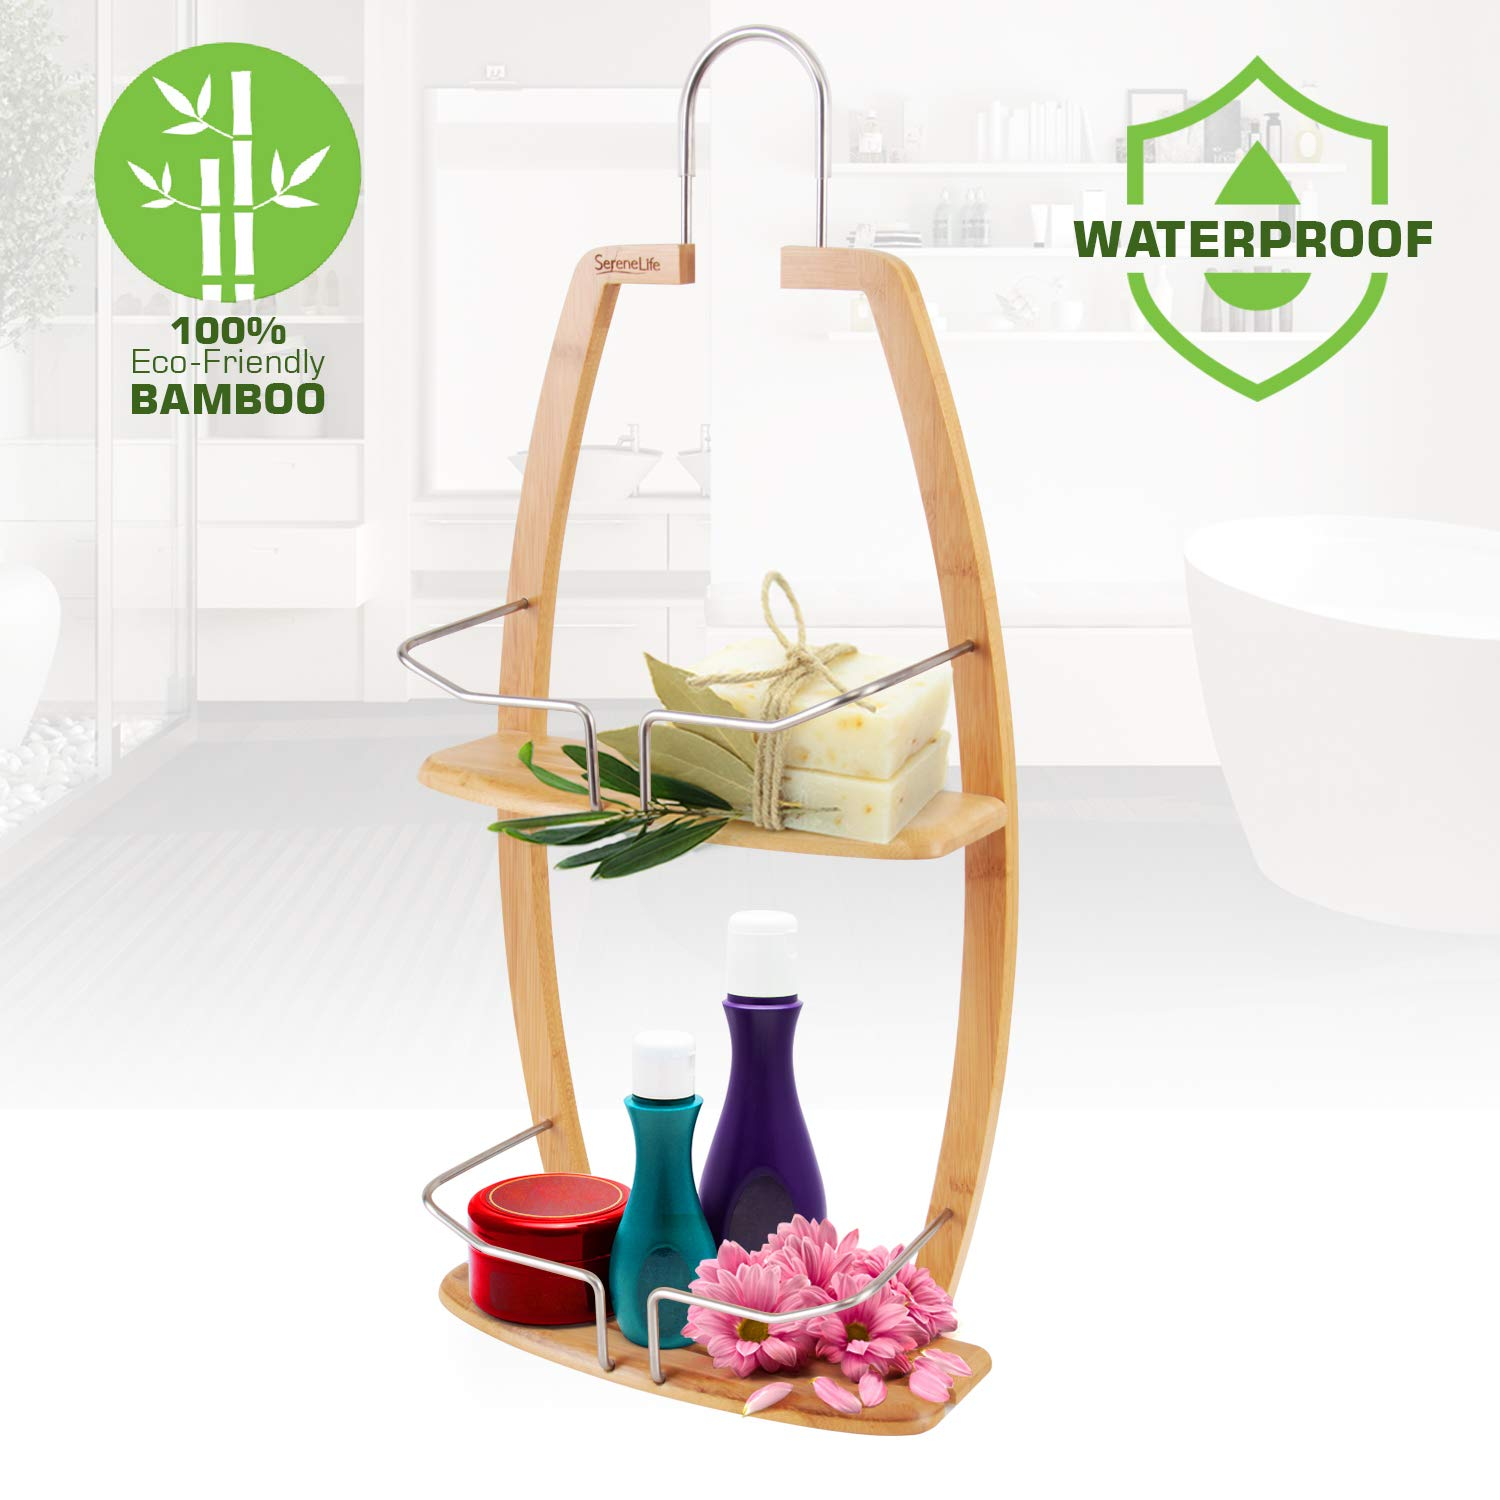 Rustproof Hanging Wood Shower Caddy - 2 Tier Waterproof and Natural Bamboo Bathroom Wall Organizer with Stainless Steel Shelf Rack for Shampoo, Conditioner and Soap Storage - SereneLife SLSHCD45 by SereneLife